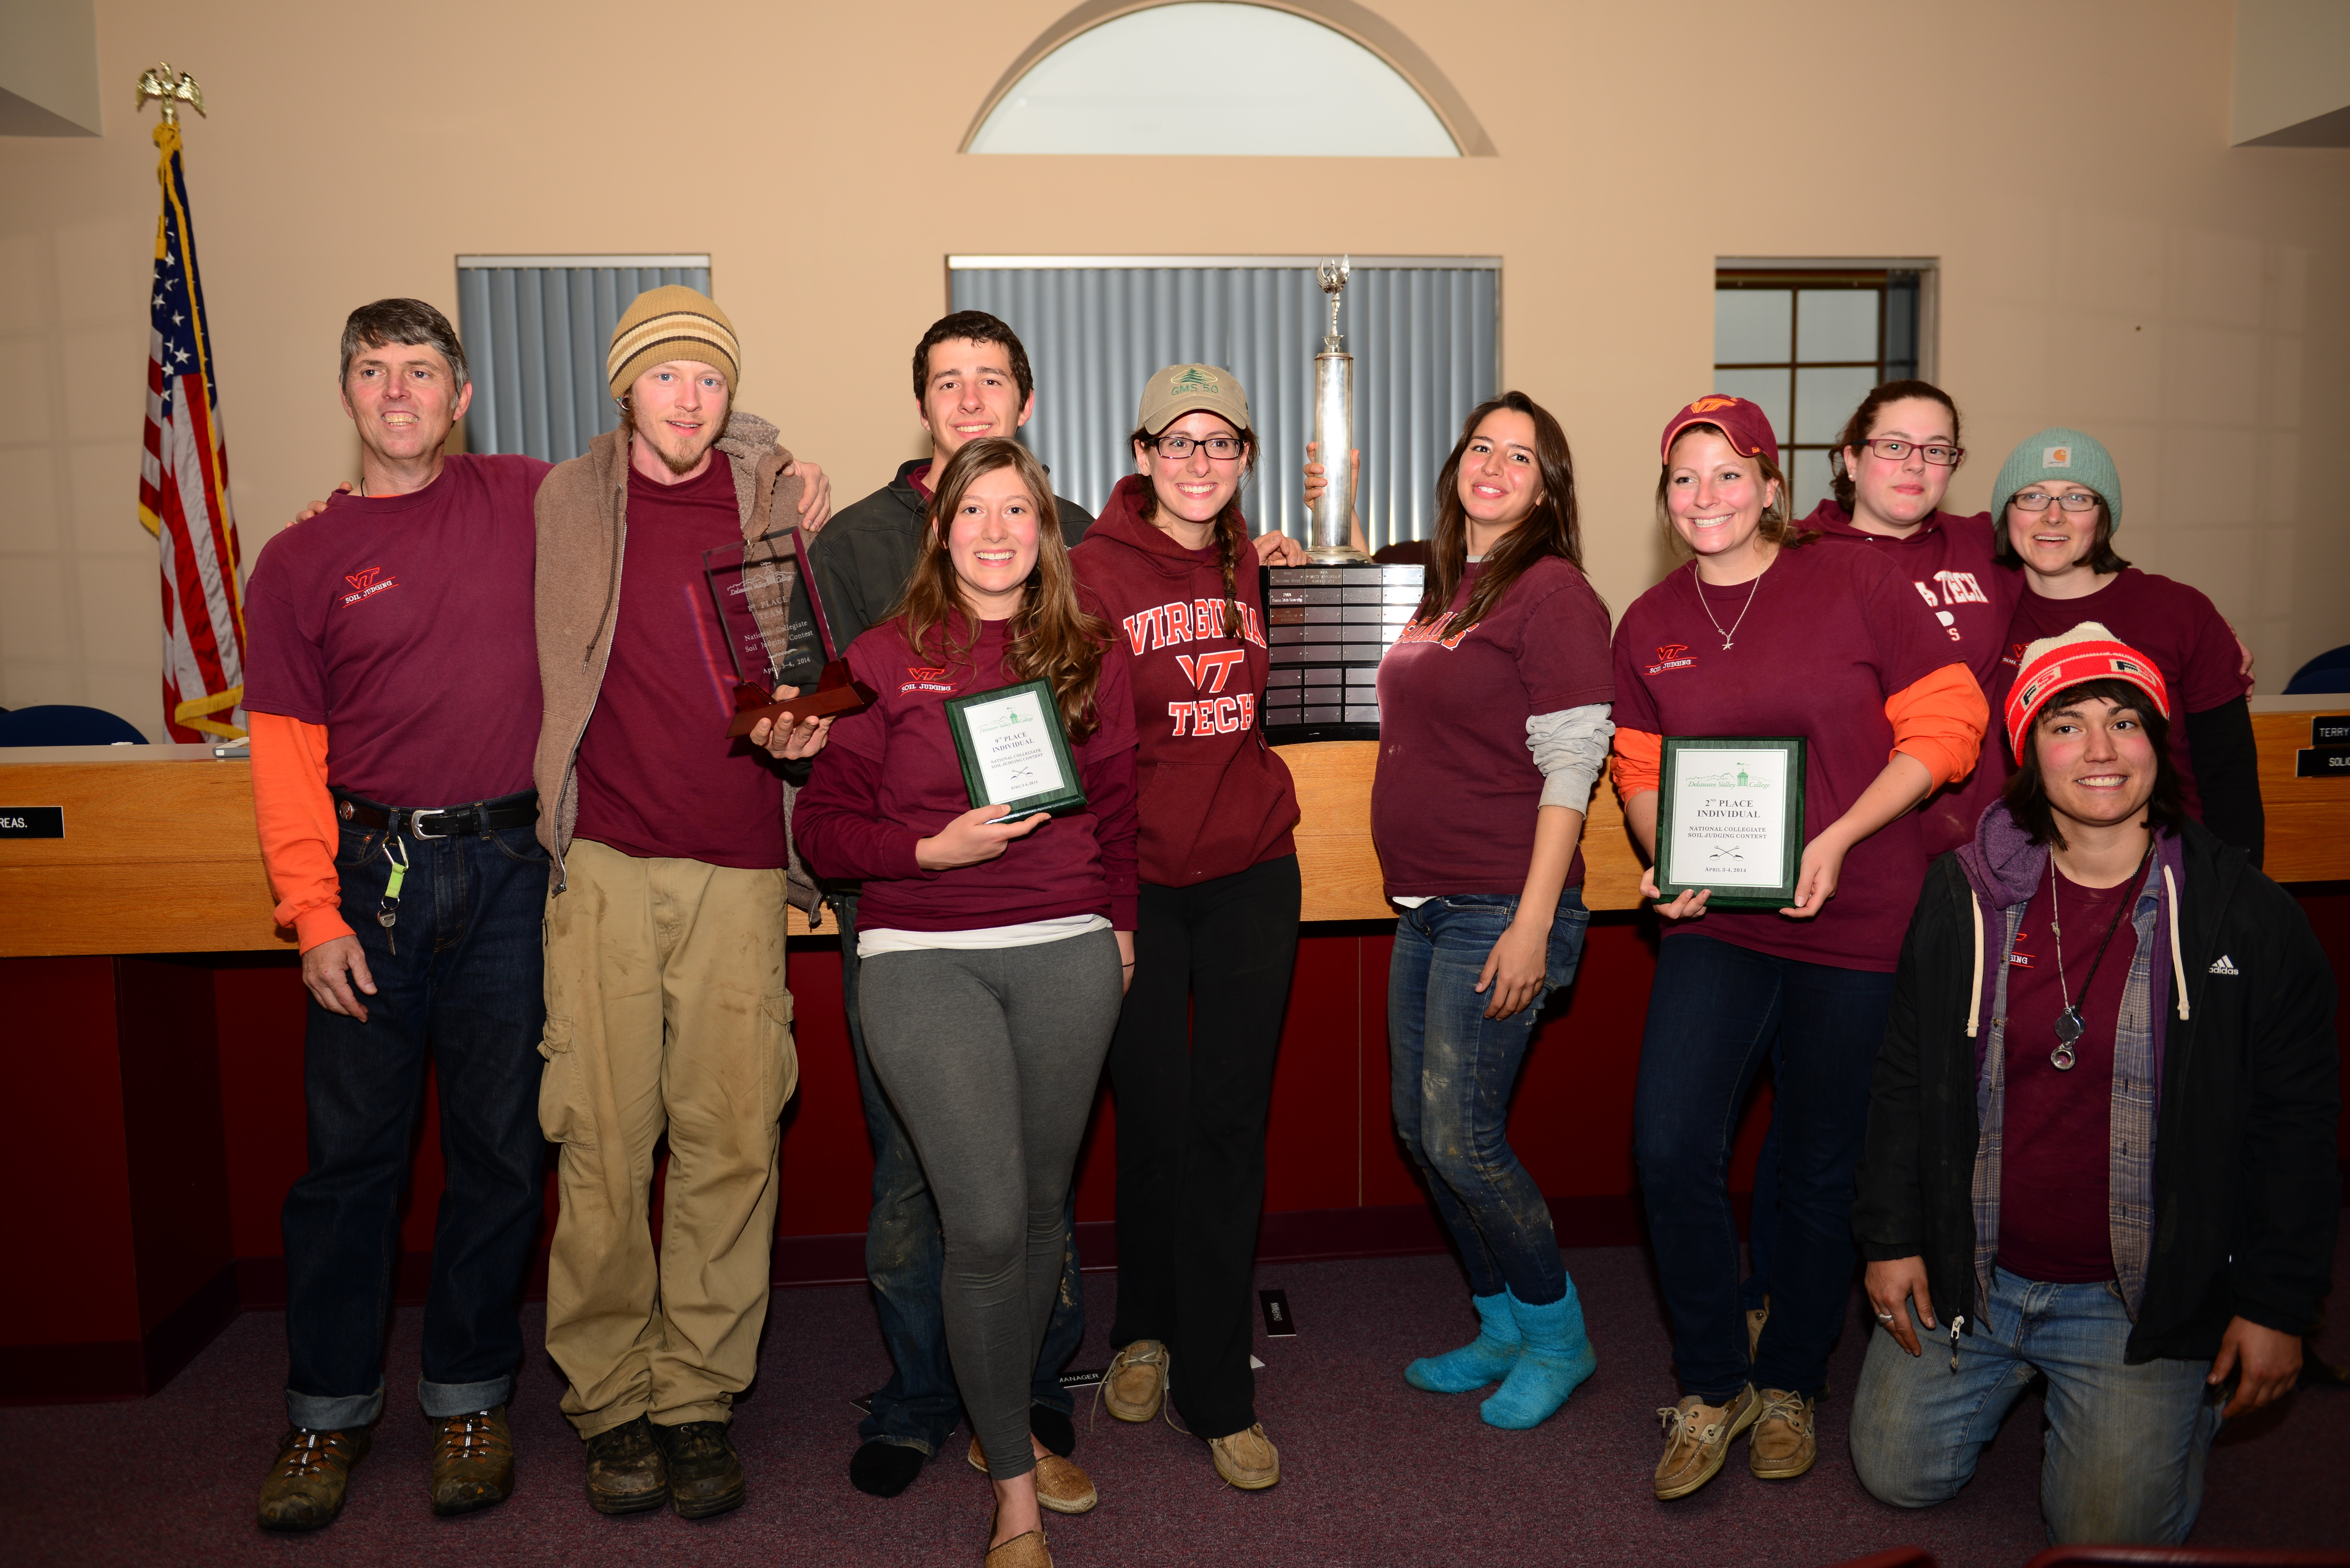 The Virginia Tech Soil Judging Team